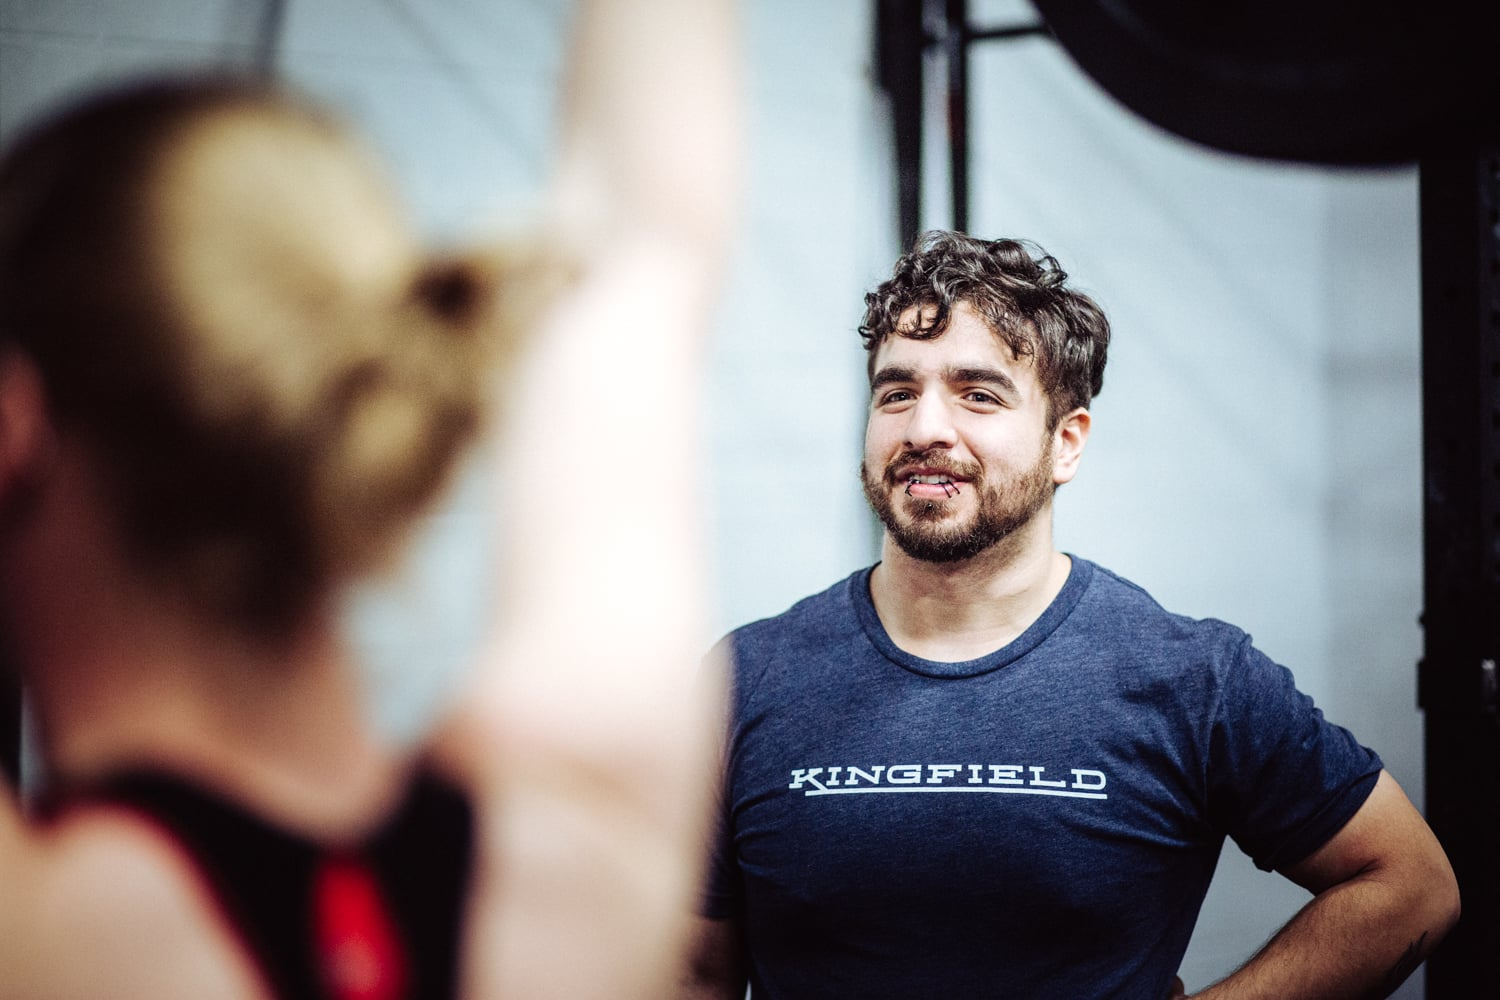 """""""Here at CrossFit Kingfield, I've learned to fail with a better attitude. In my failures, I've grown and learned to succeed in ways I never dreamed possible."""""""